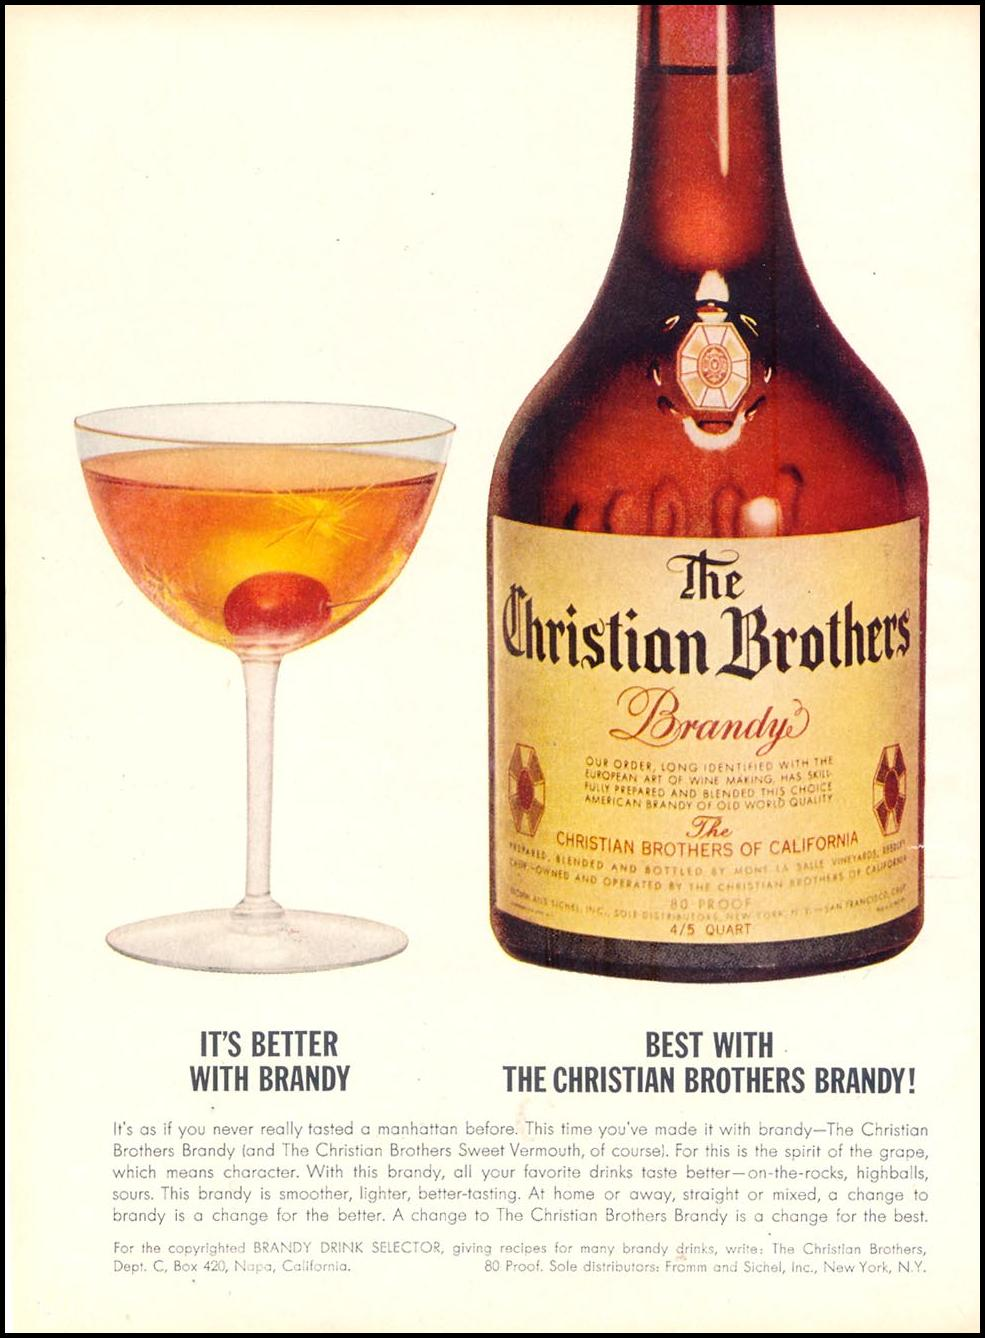 THE CHRISTIAN BROTHERS BRANDY TIME 12/07/1962 p. 56